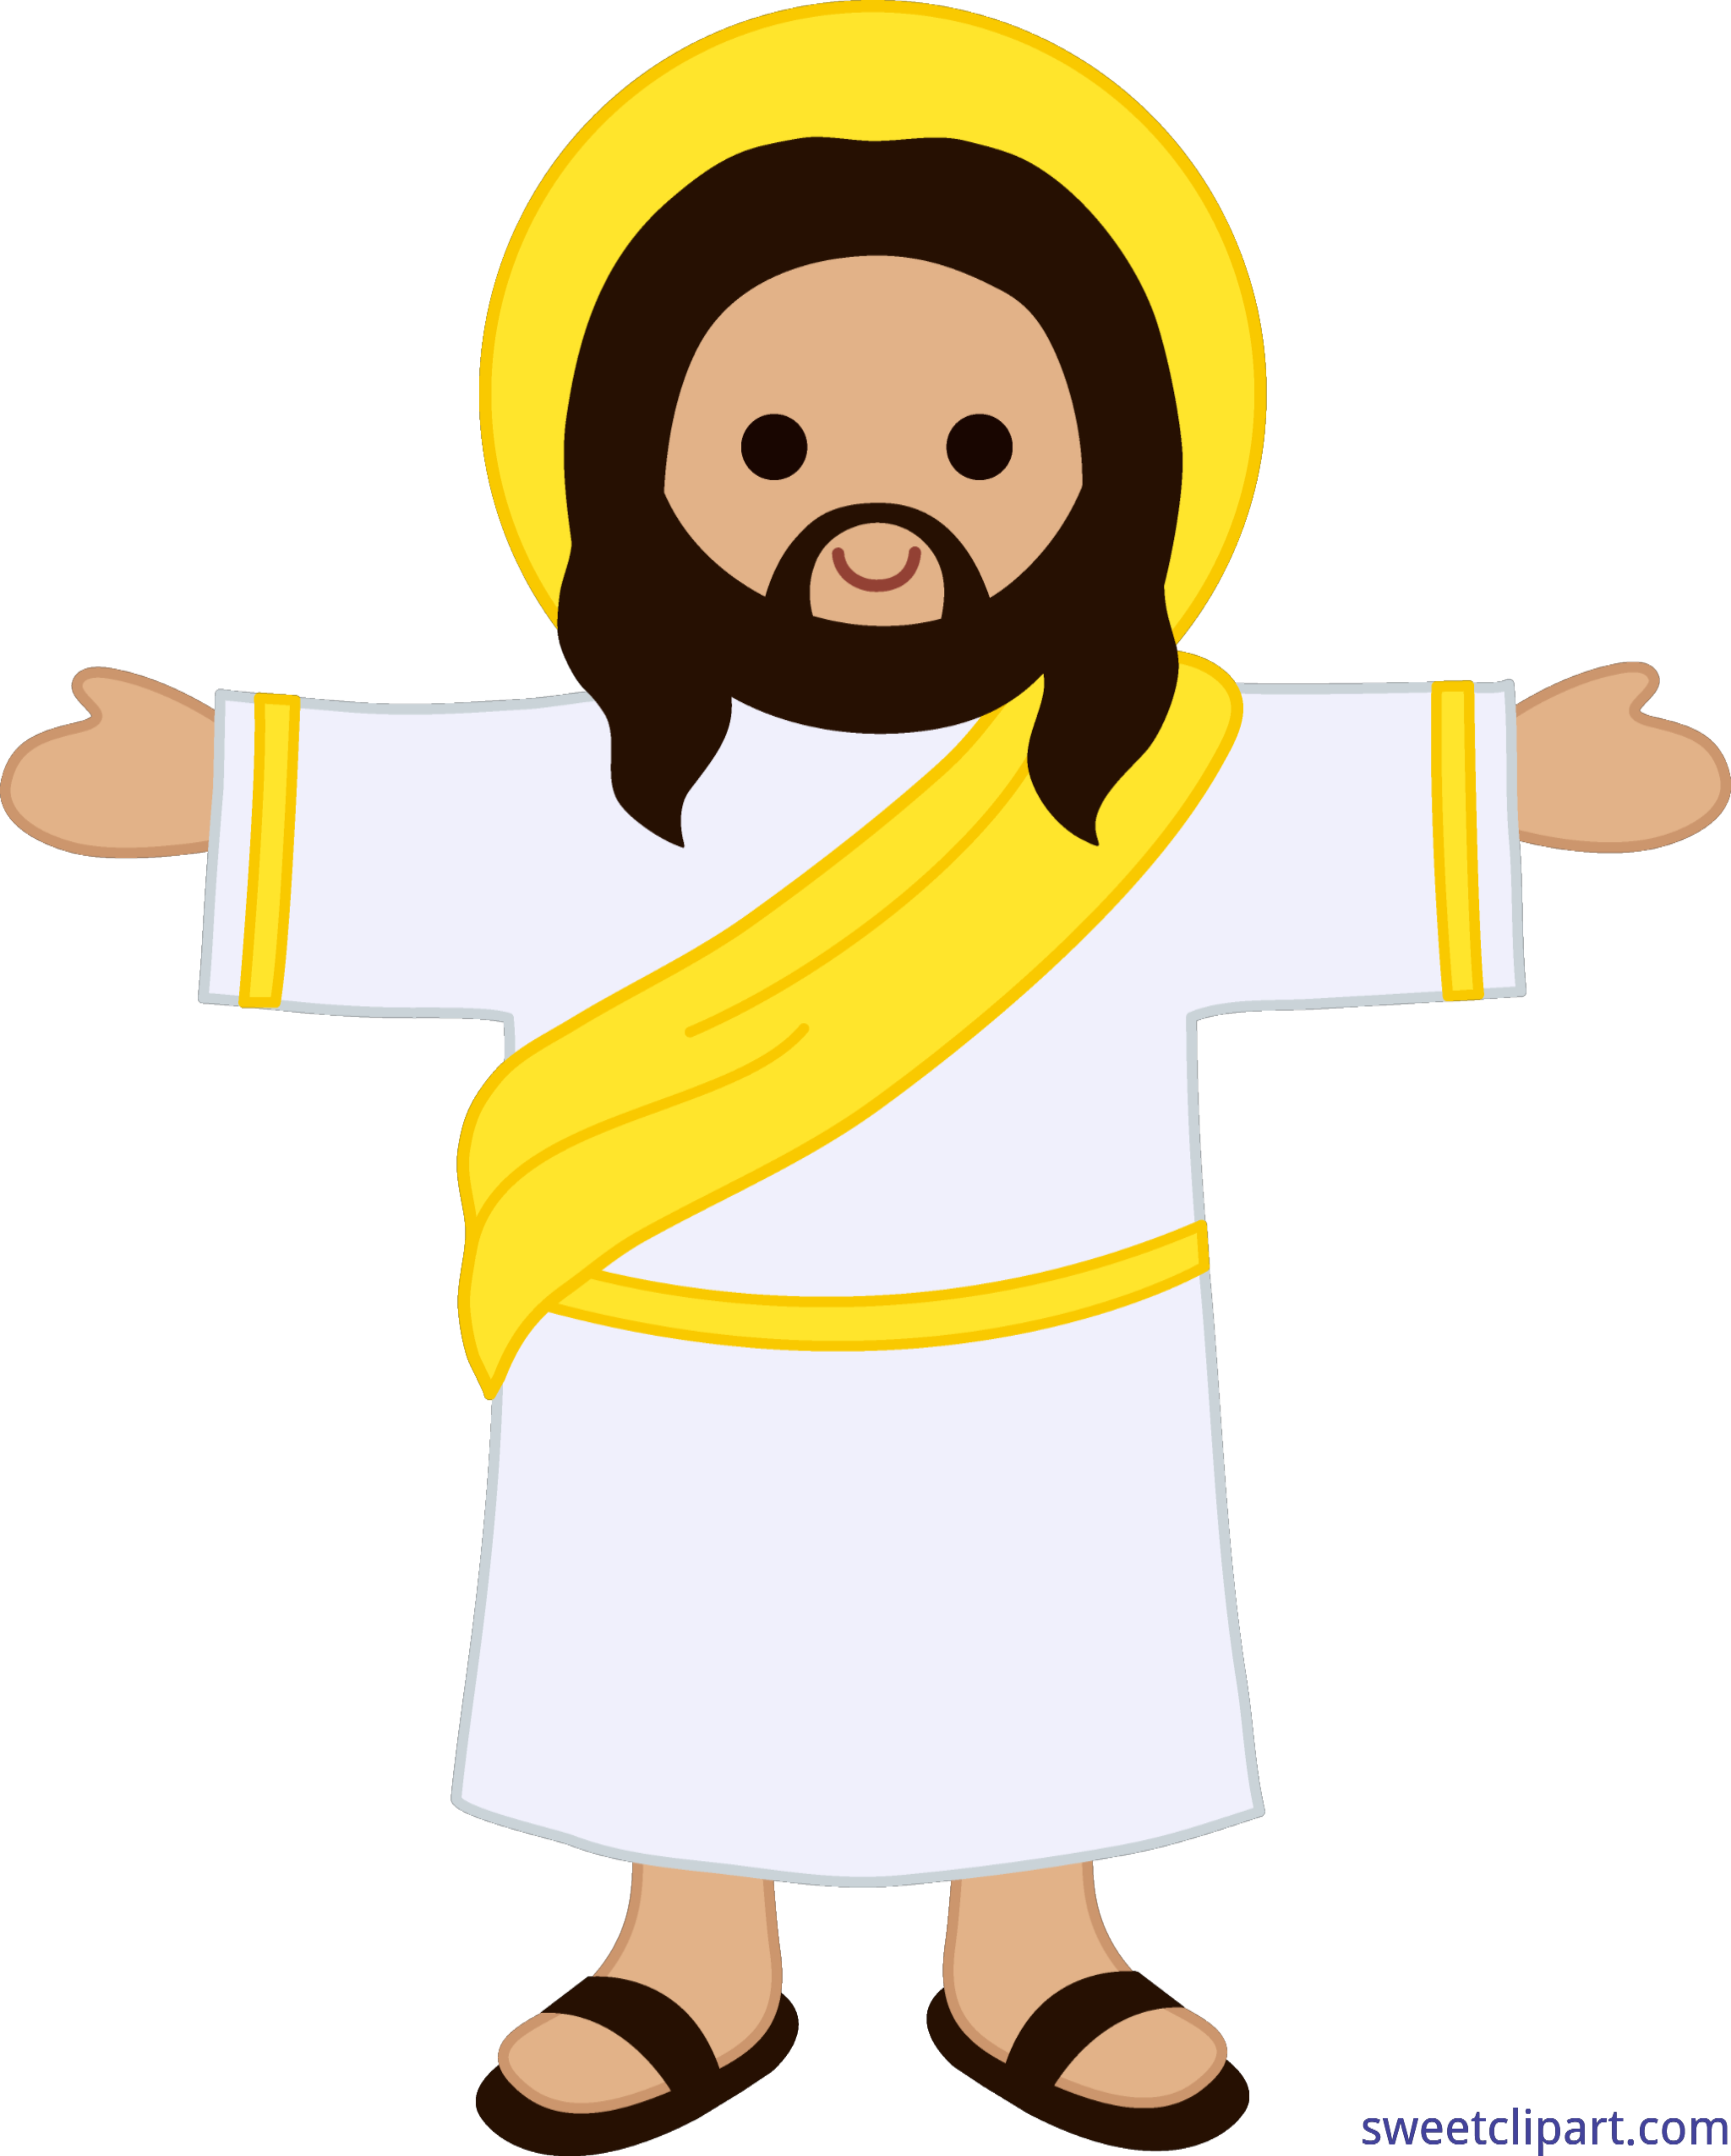 Jesus christ pictures clipart png royalty free stock Cute Jesus Christ Clip Art - Sweet Clip Art png royalty free stock